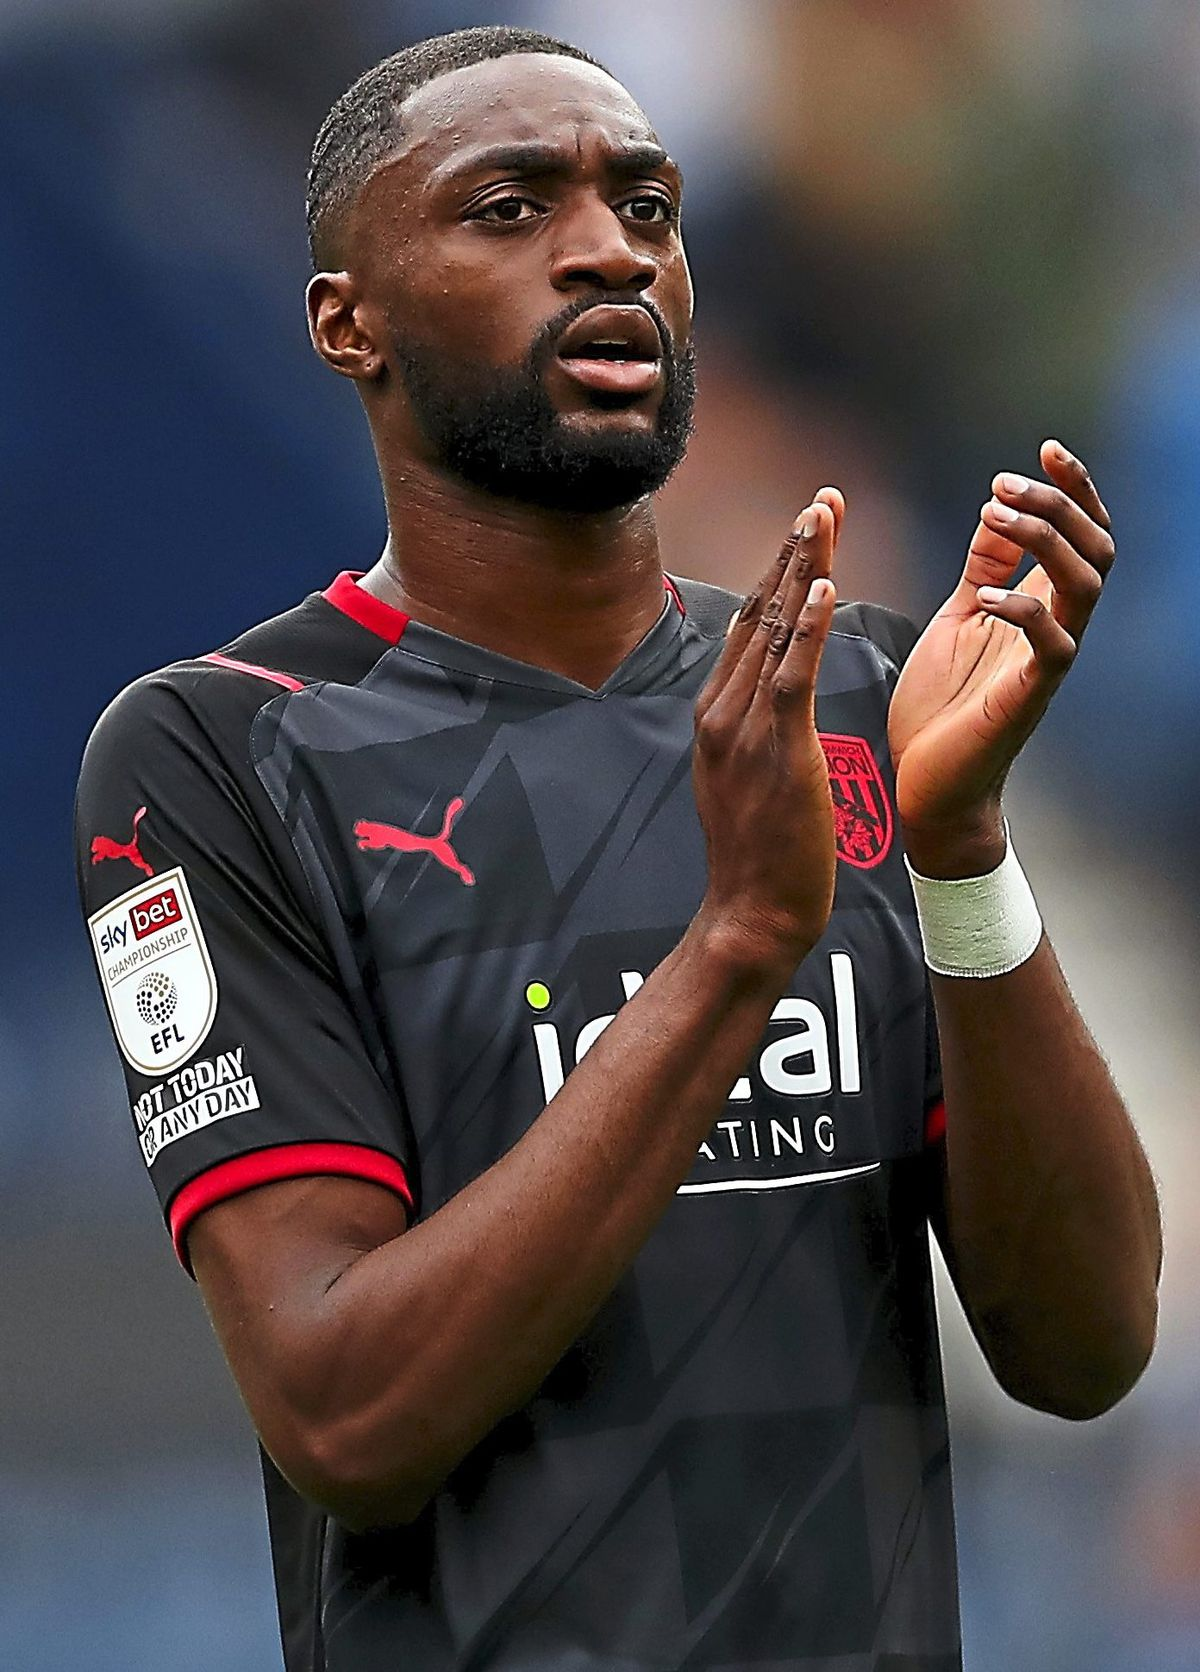 PRESTON, ENGLAND - SEPTEMBER 18:.Semi Ajayi of West Bromwich Albion applauds the travelling West Bromwich Albion Fans at the end of the Sky Bet Championship match between Preston North End and West Bromwich Albion at Deepdale on September 18, 2021 in Preston, England. (Photo by Adam Fradgley/West Bromwich Albion FC via Getty Images).